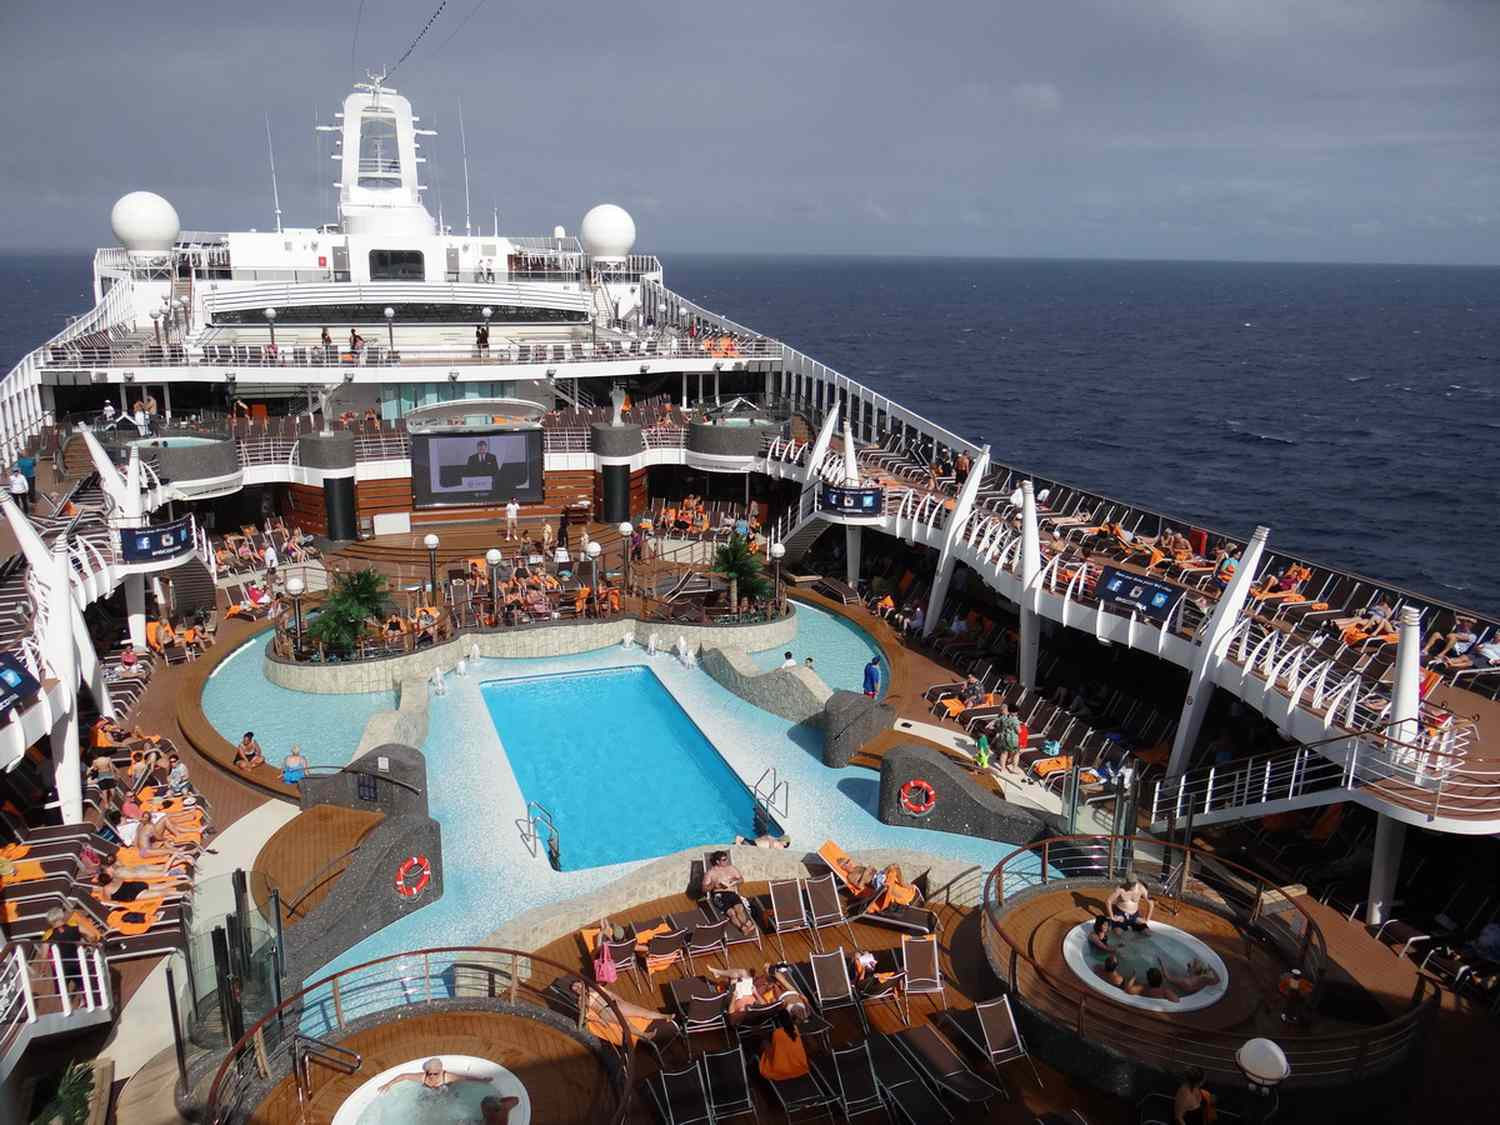 Enjoy The Exterior Decks On The Msc Divina Cruise Ship